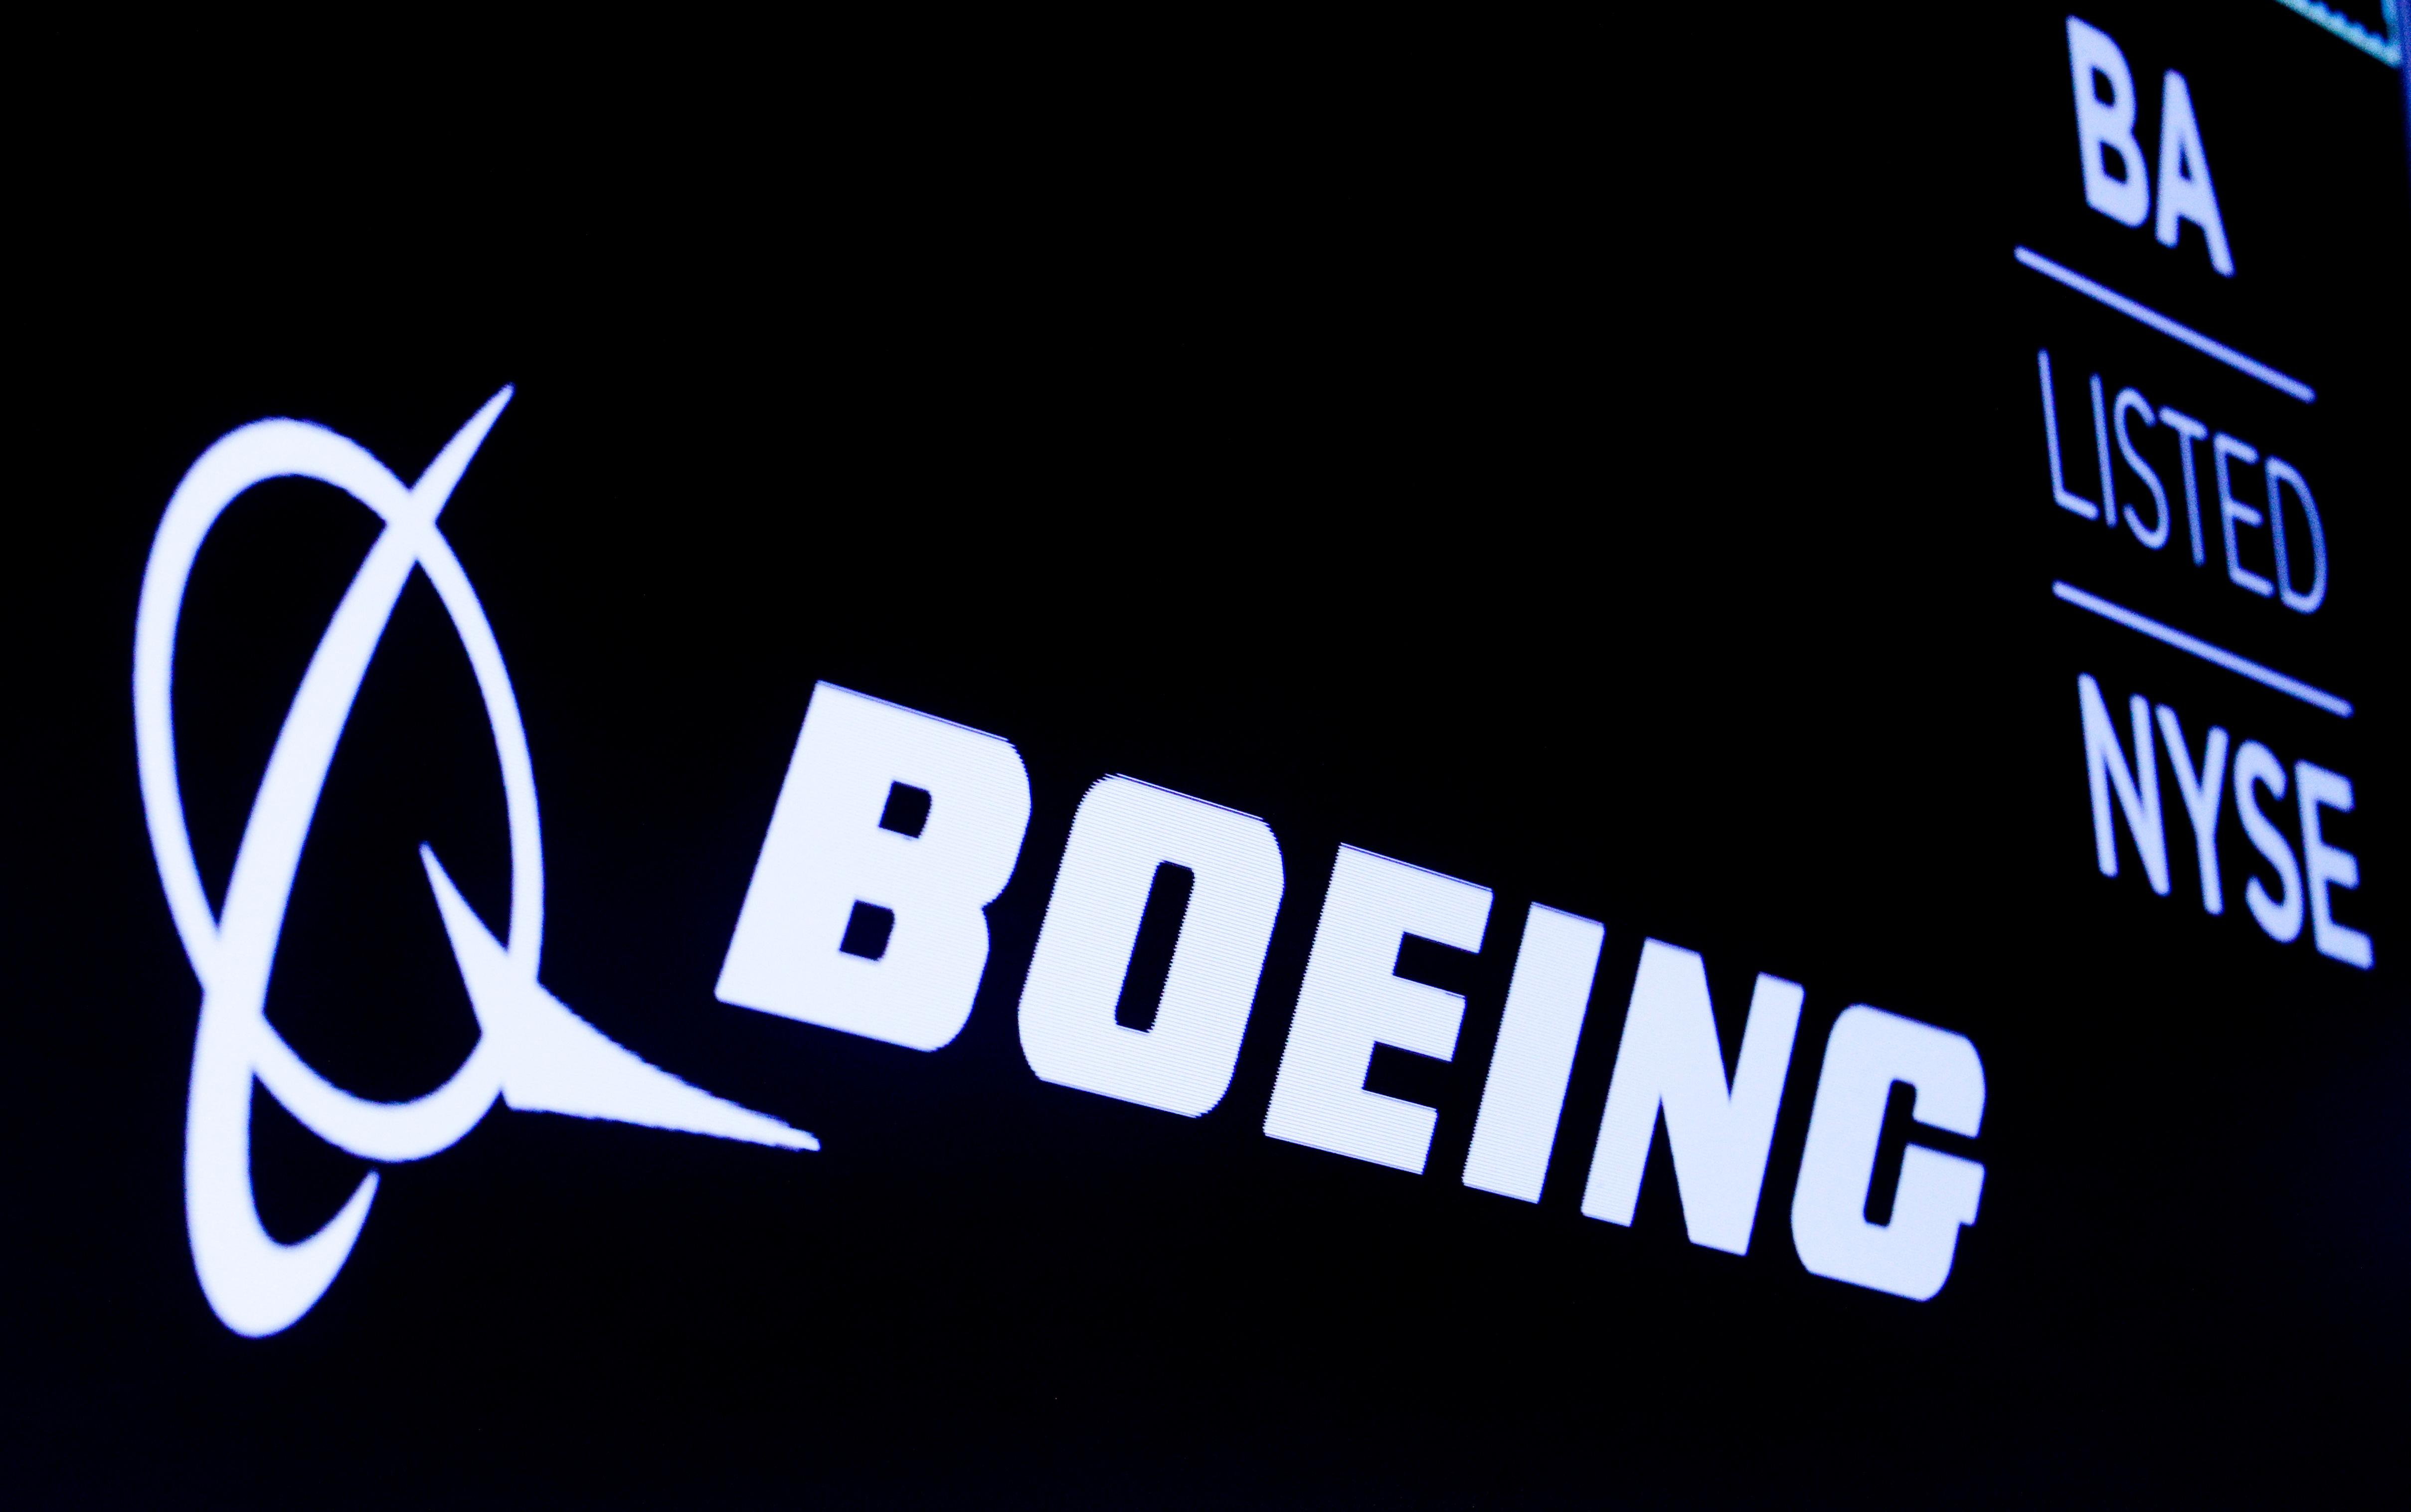 Boeing CEO Dennis Muilenburg is out